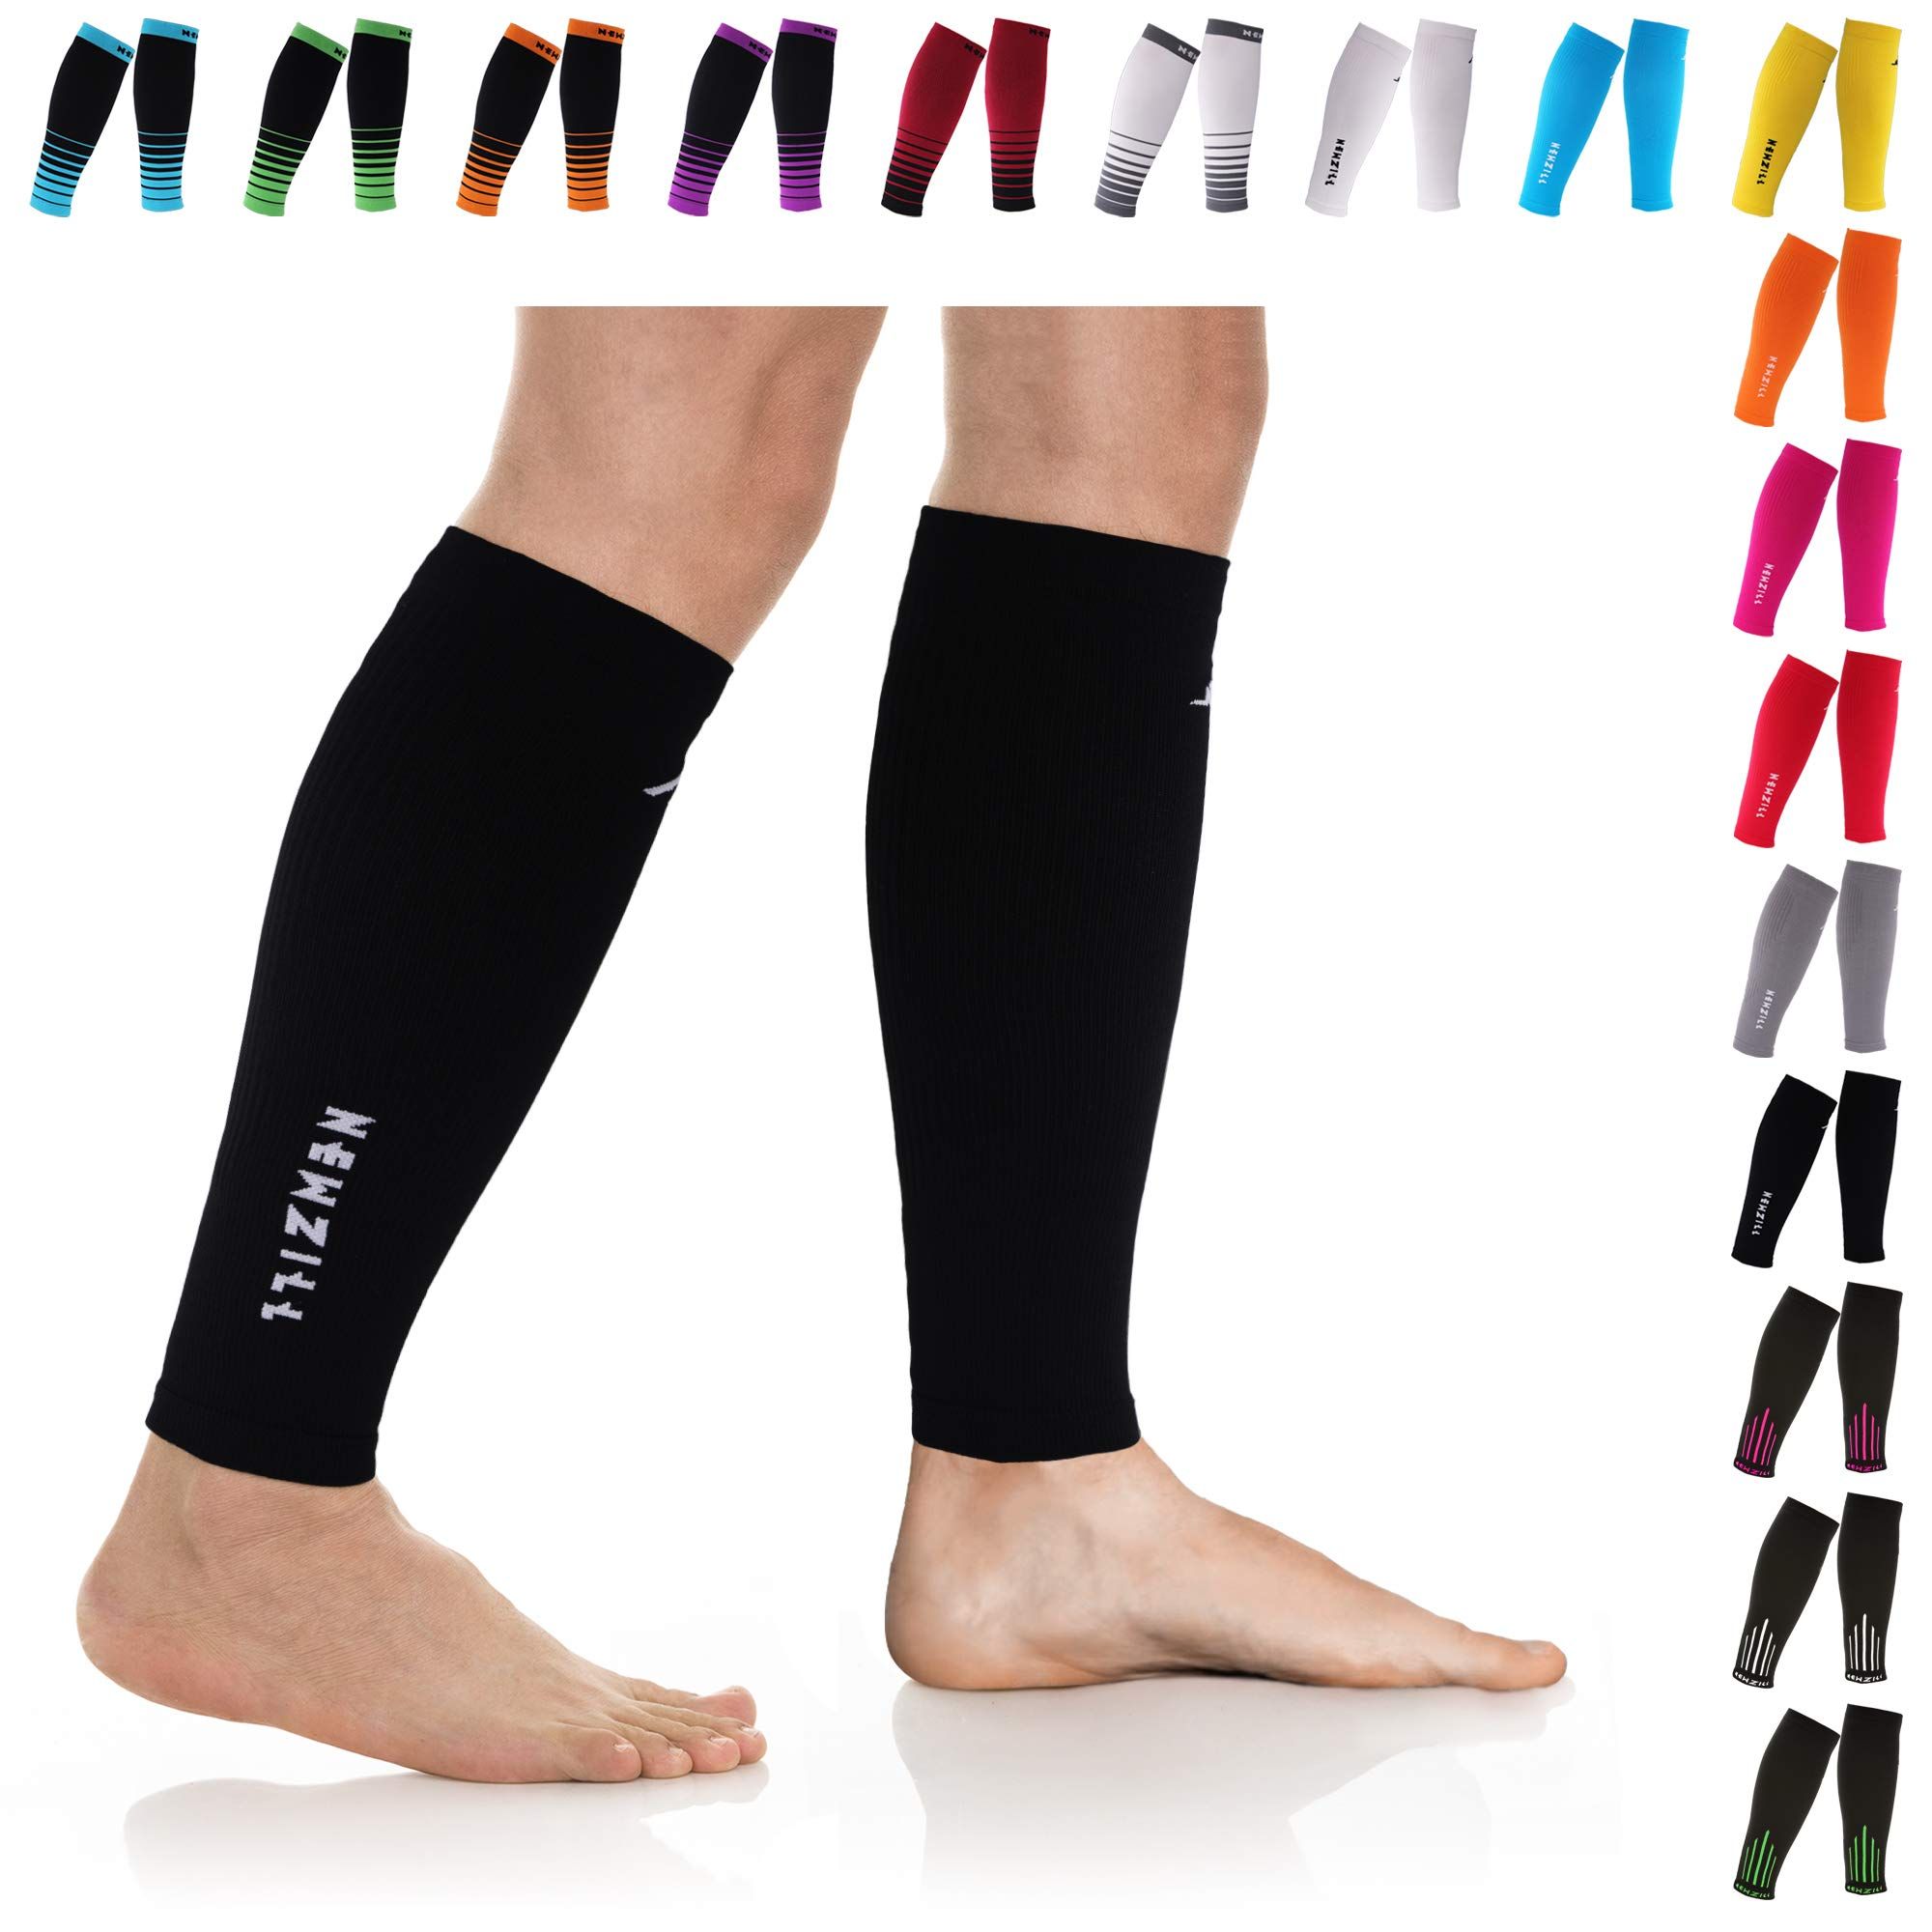 NEWZILL Compression Calf Sleeves (20-30mmHg) for Men & Women - Perfect Option to Our Compression Socks - for Running, Shin Splint, Medical, Travel, Nursing, Cycling (L/XL, Solid Black) by NEWZILL